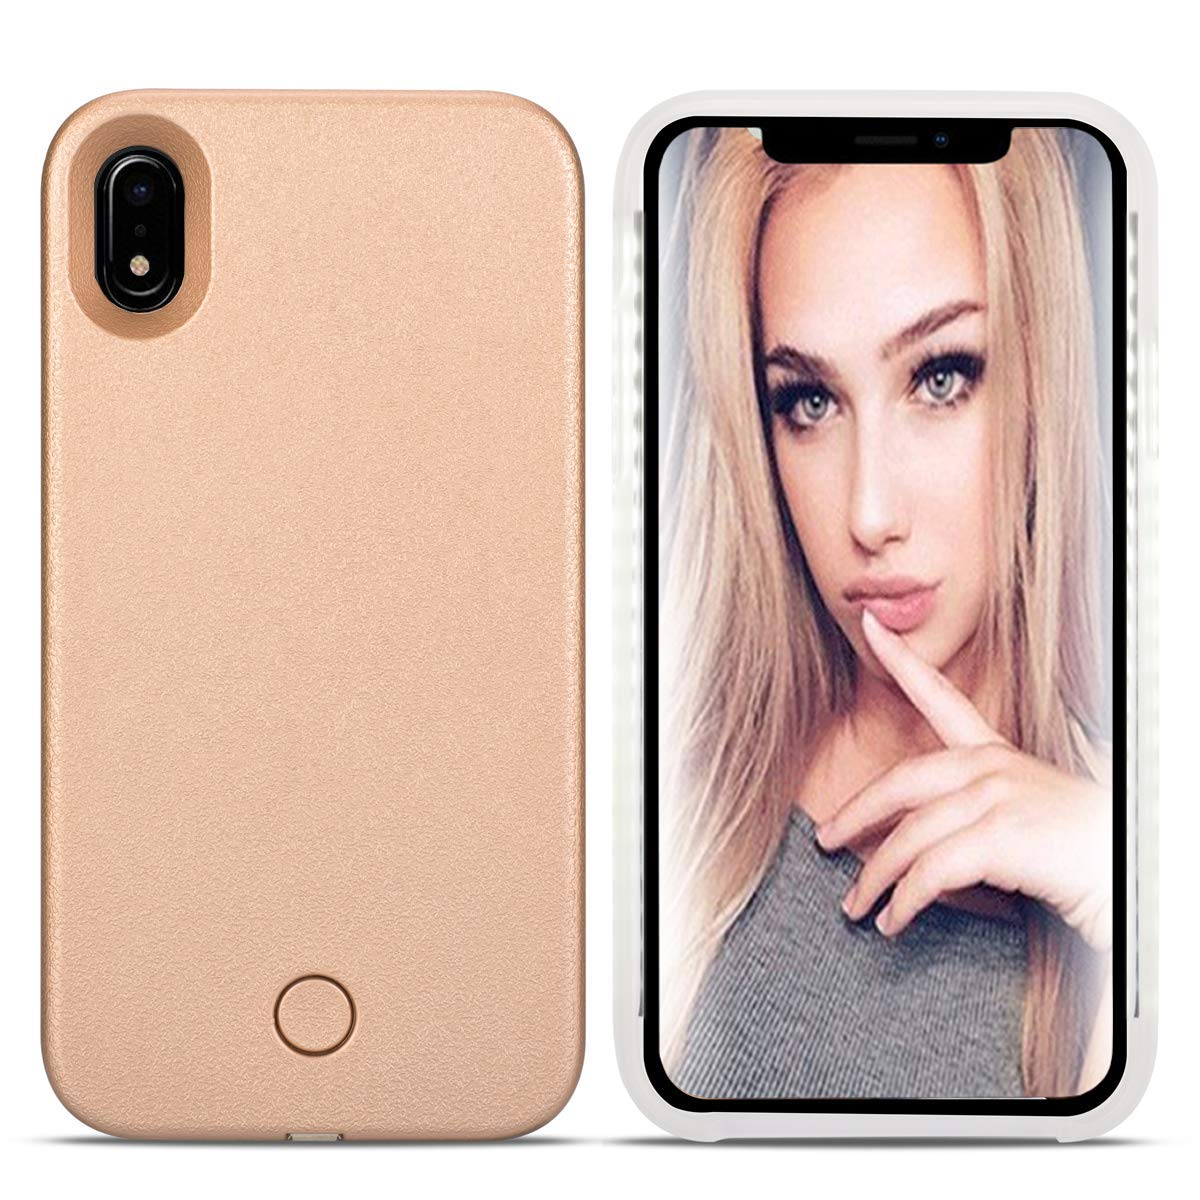 super popular ee575 af892 iPhone Xs MAX Led Case - LONHEO iPhone Xs MAX Illuminated Cell Phone Case  Great for a Bright Selfie and Facetime Light Up Case Cover for iPhone Xs  MAX ...